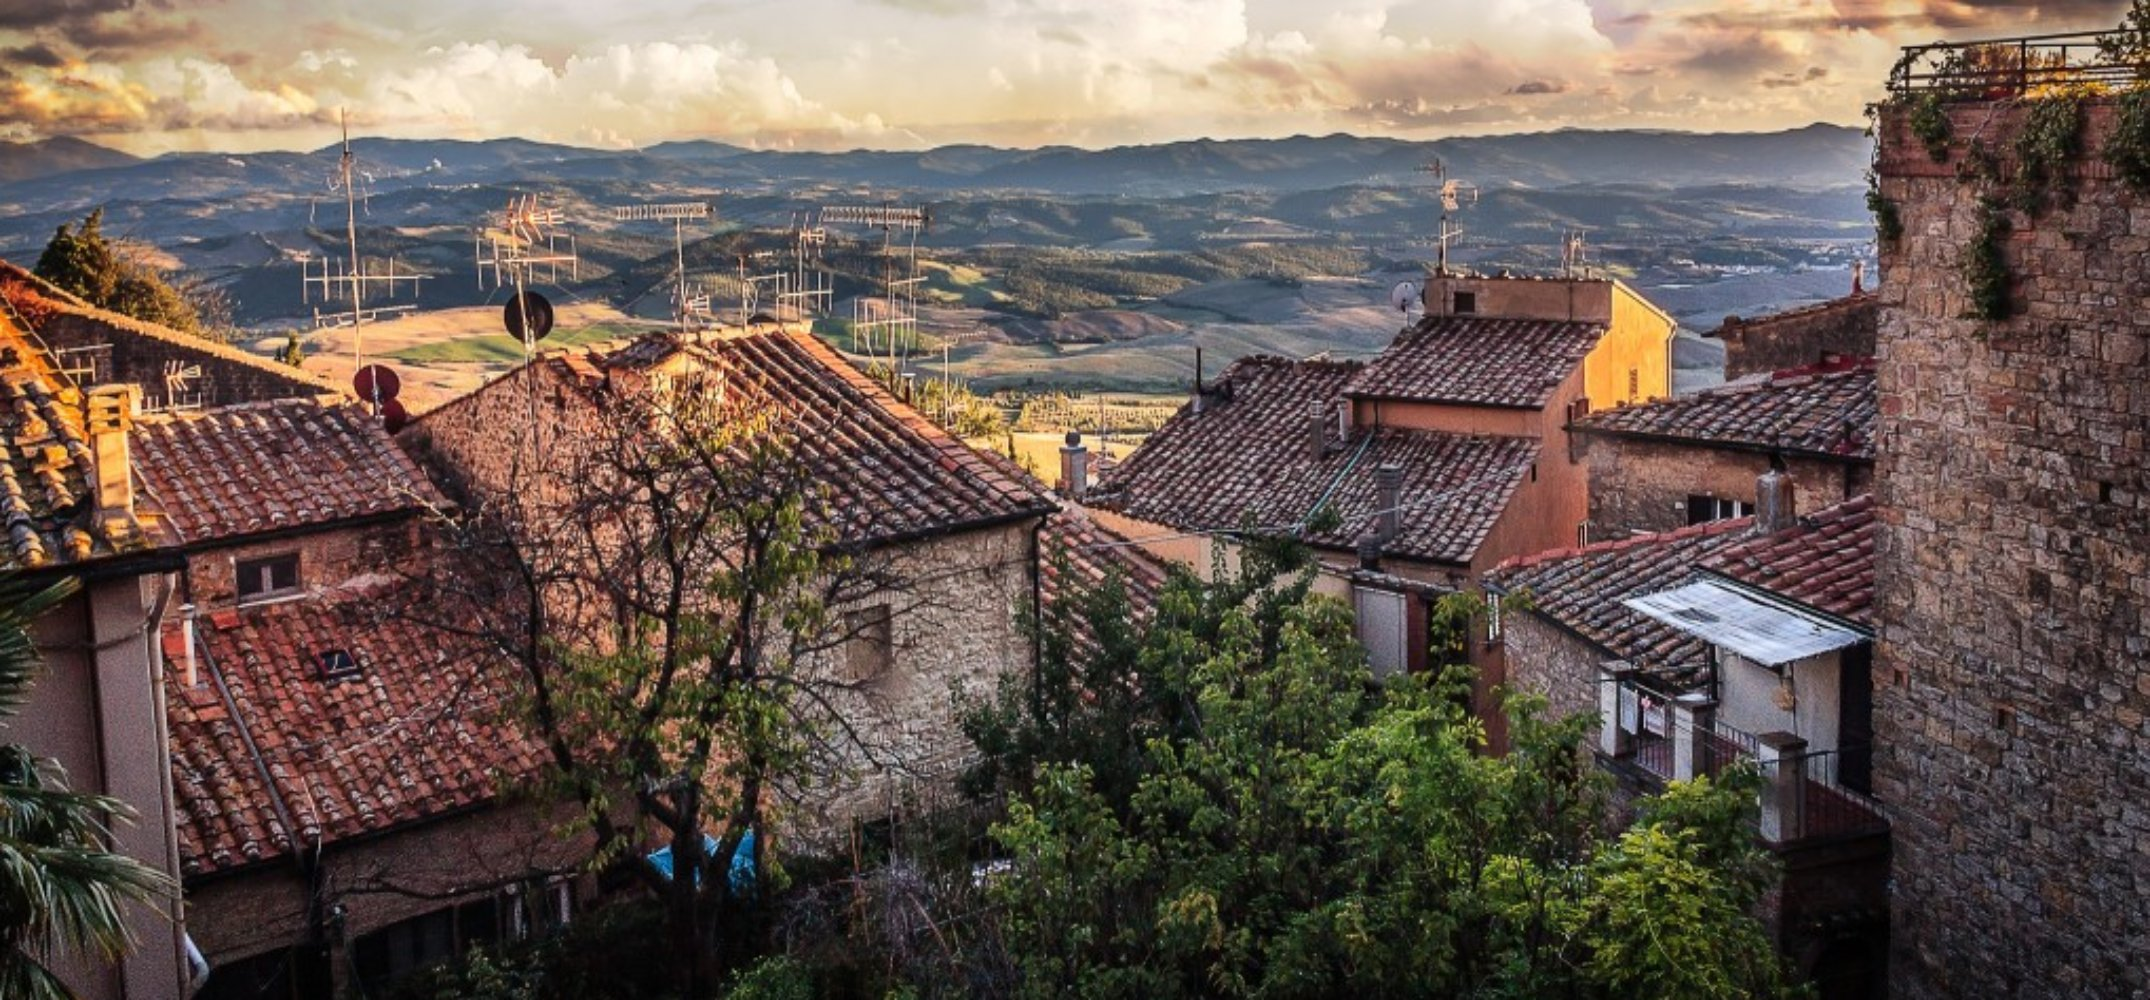 Mini guide to the top 10 hill towns in Tuscany | Visit Tuscany